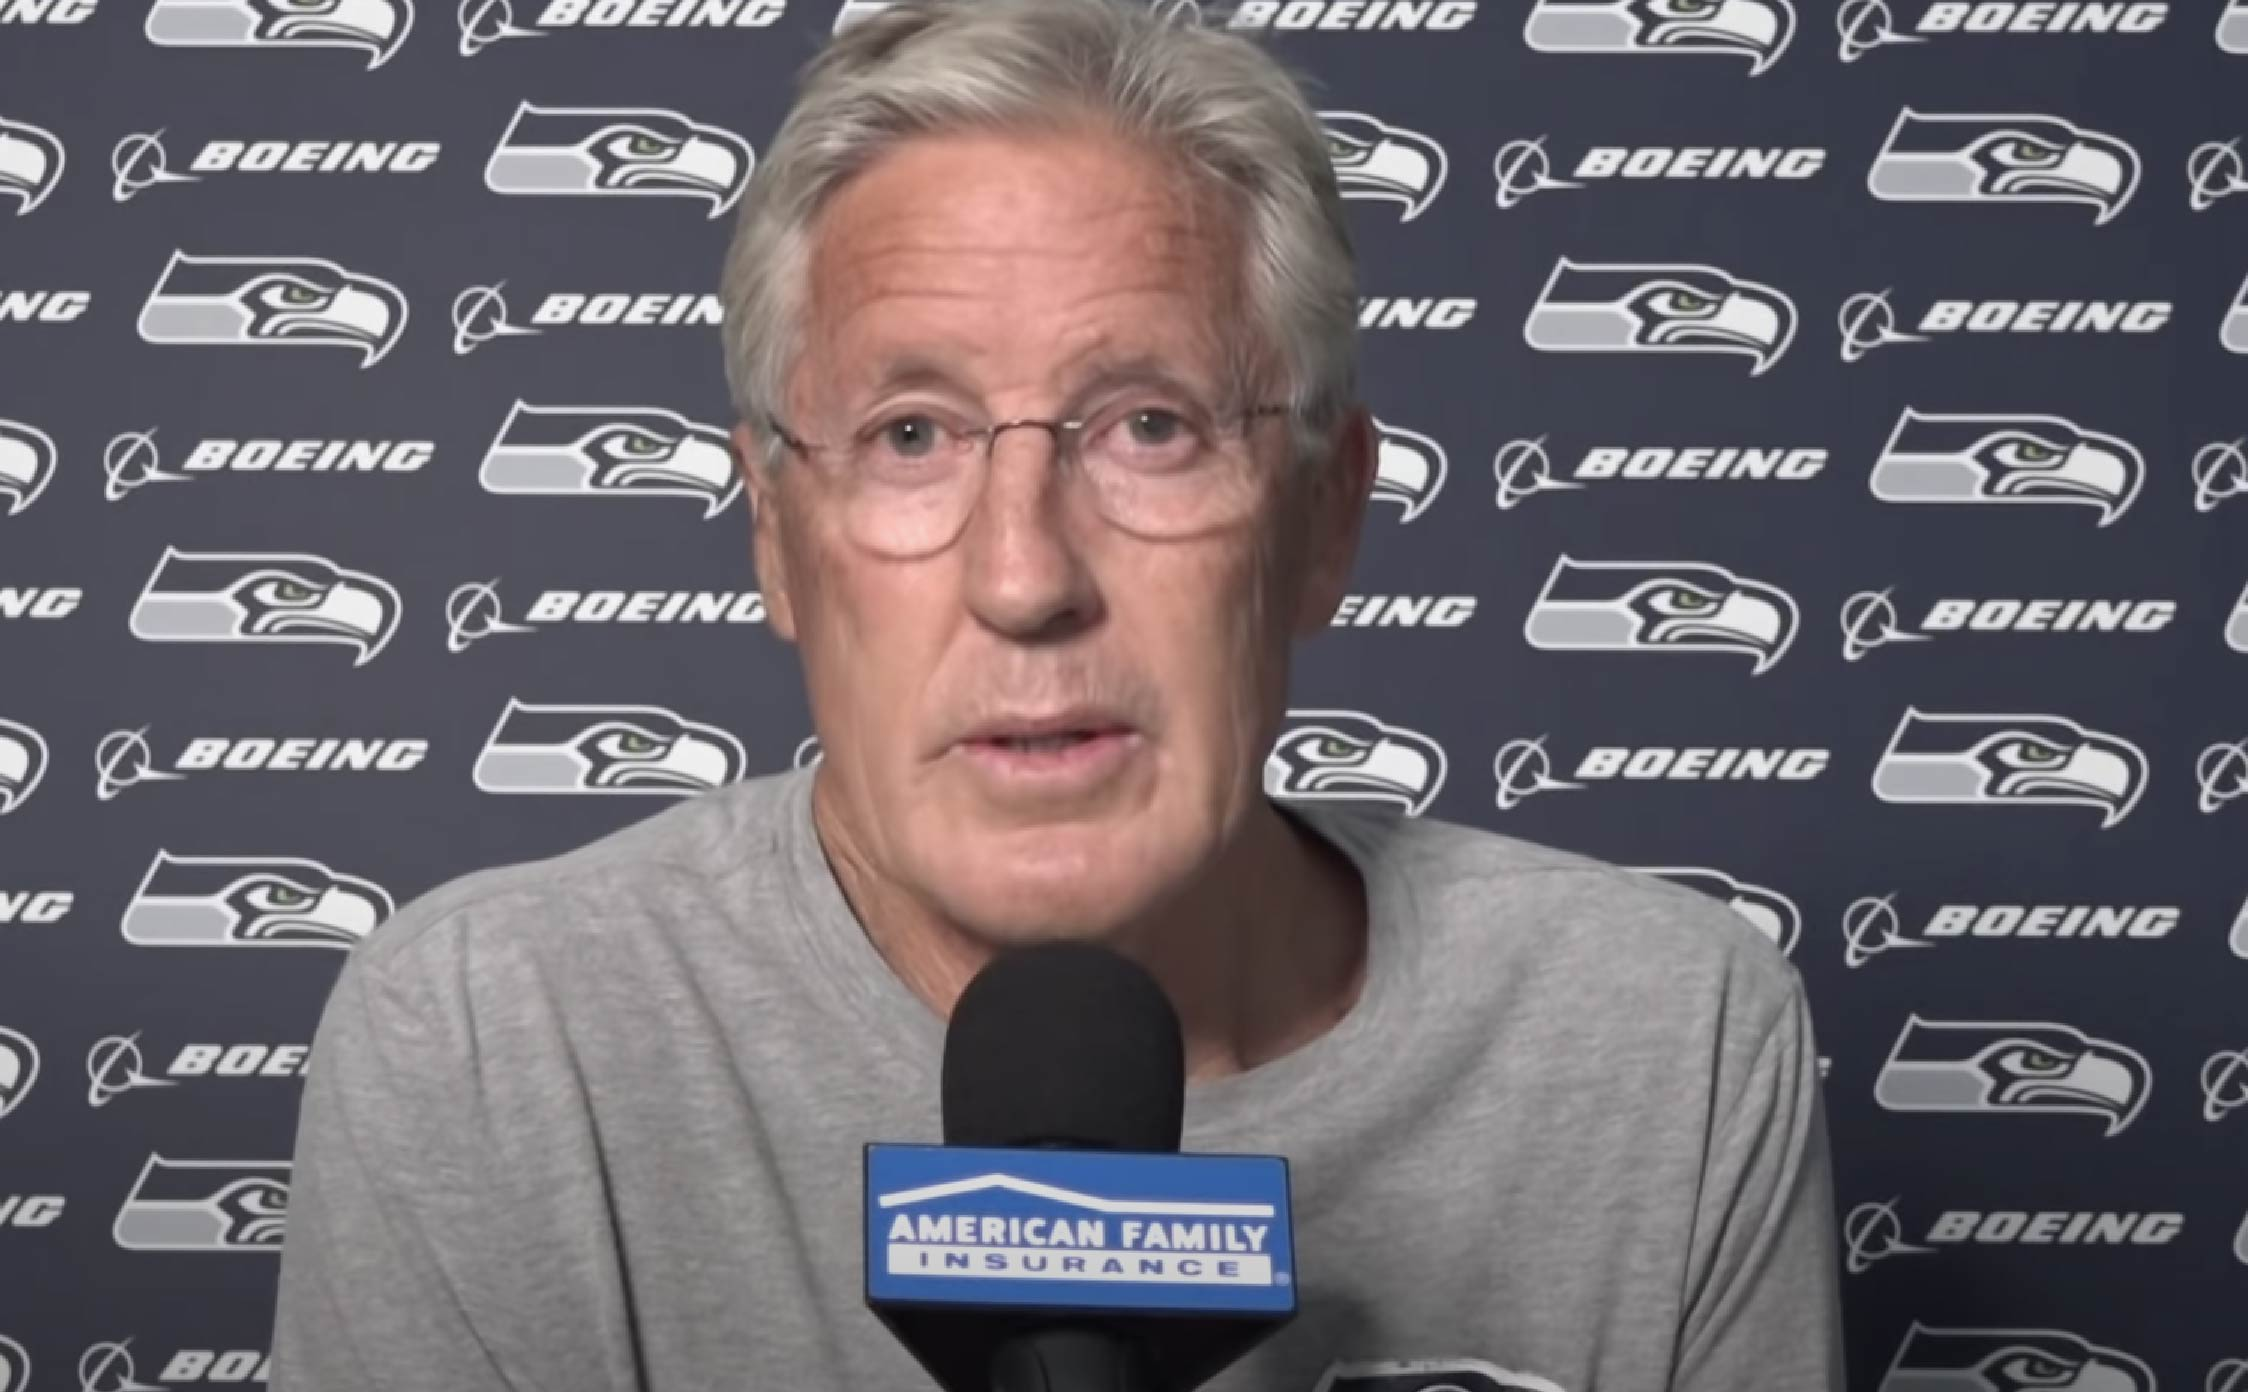 [VIDEO] Wealthy White Seattle Seahawks Head Coach is Fed Up With Rich, Dumb, Racist White People